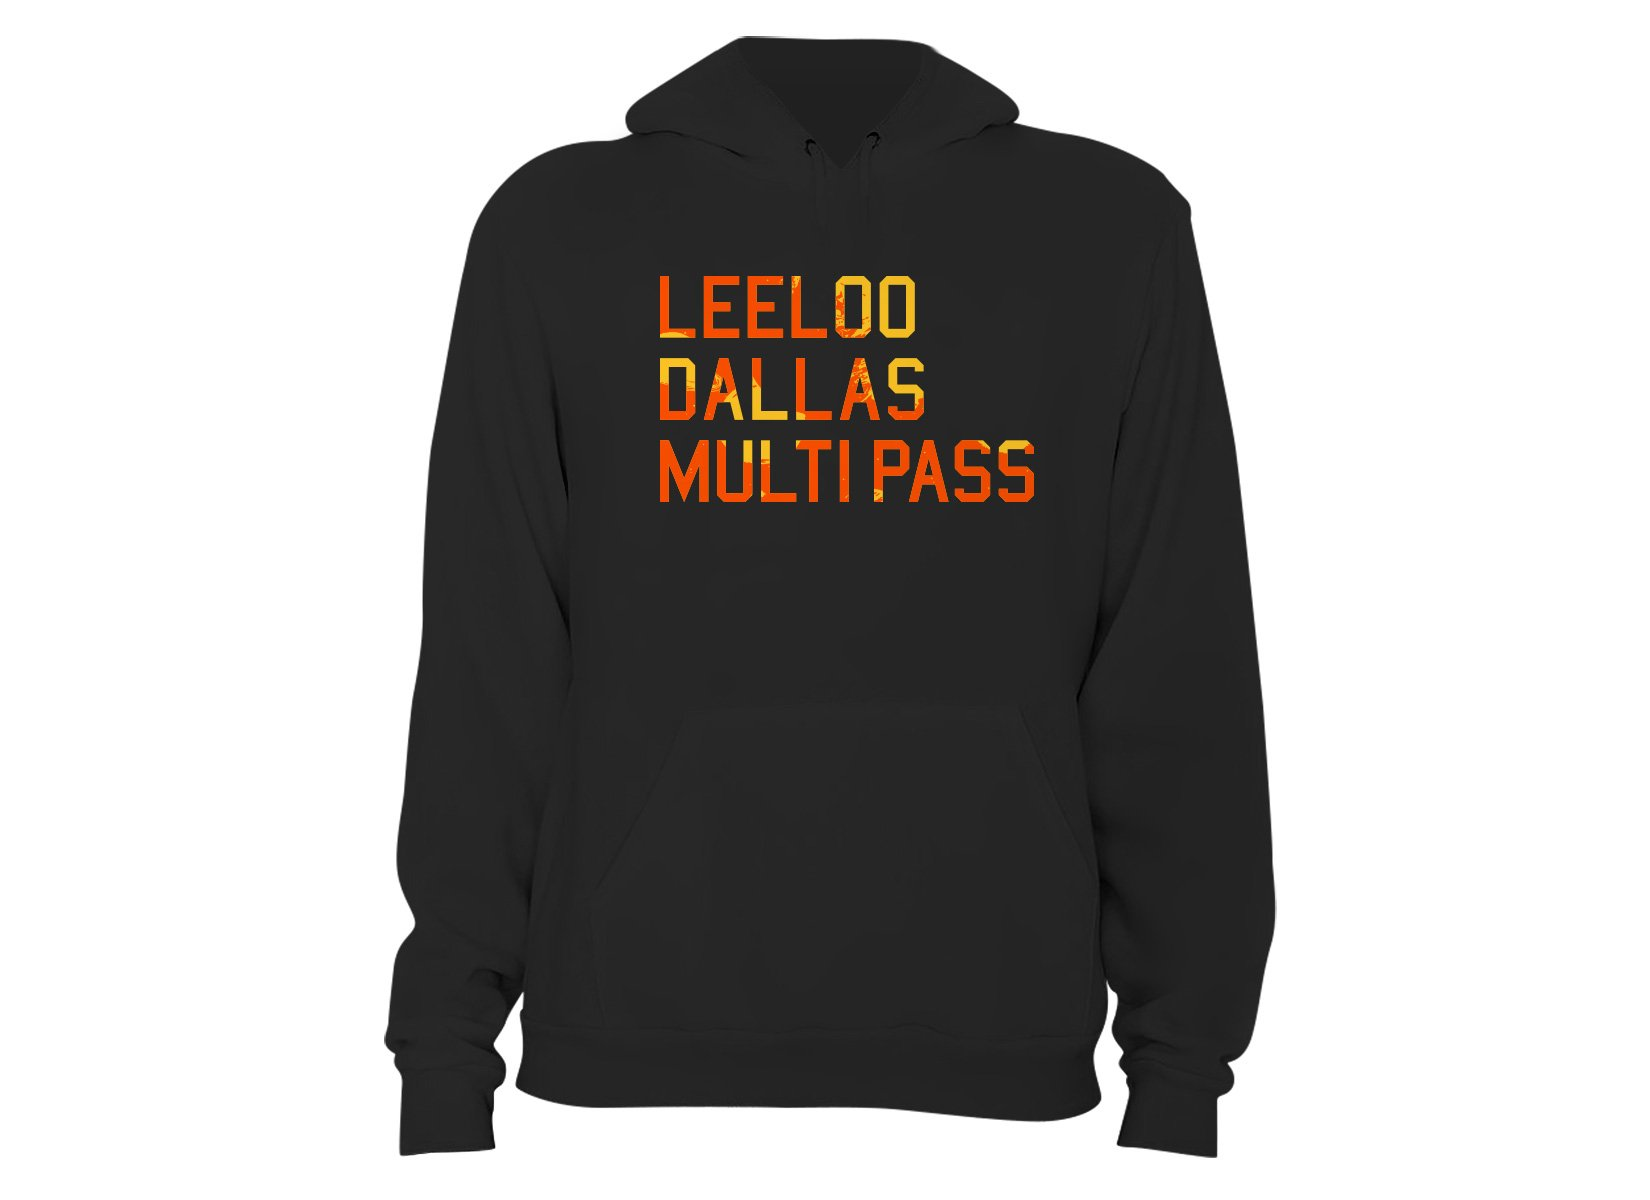 Leeloo Dallas Multipass on Hoodie